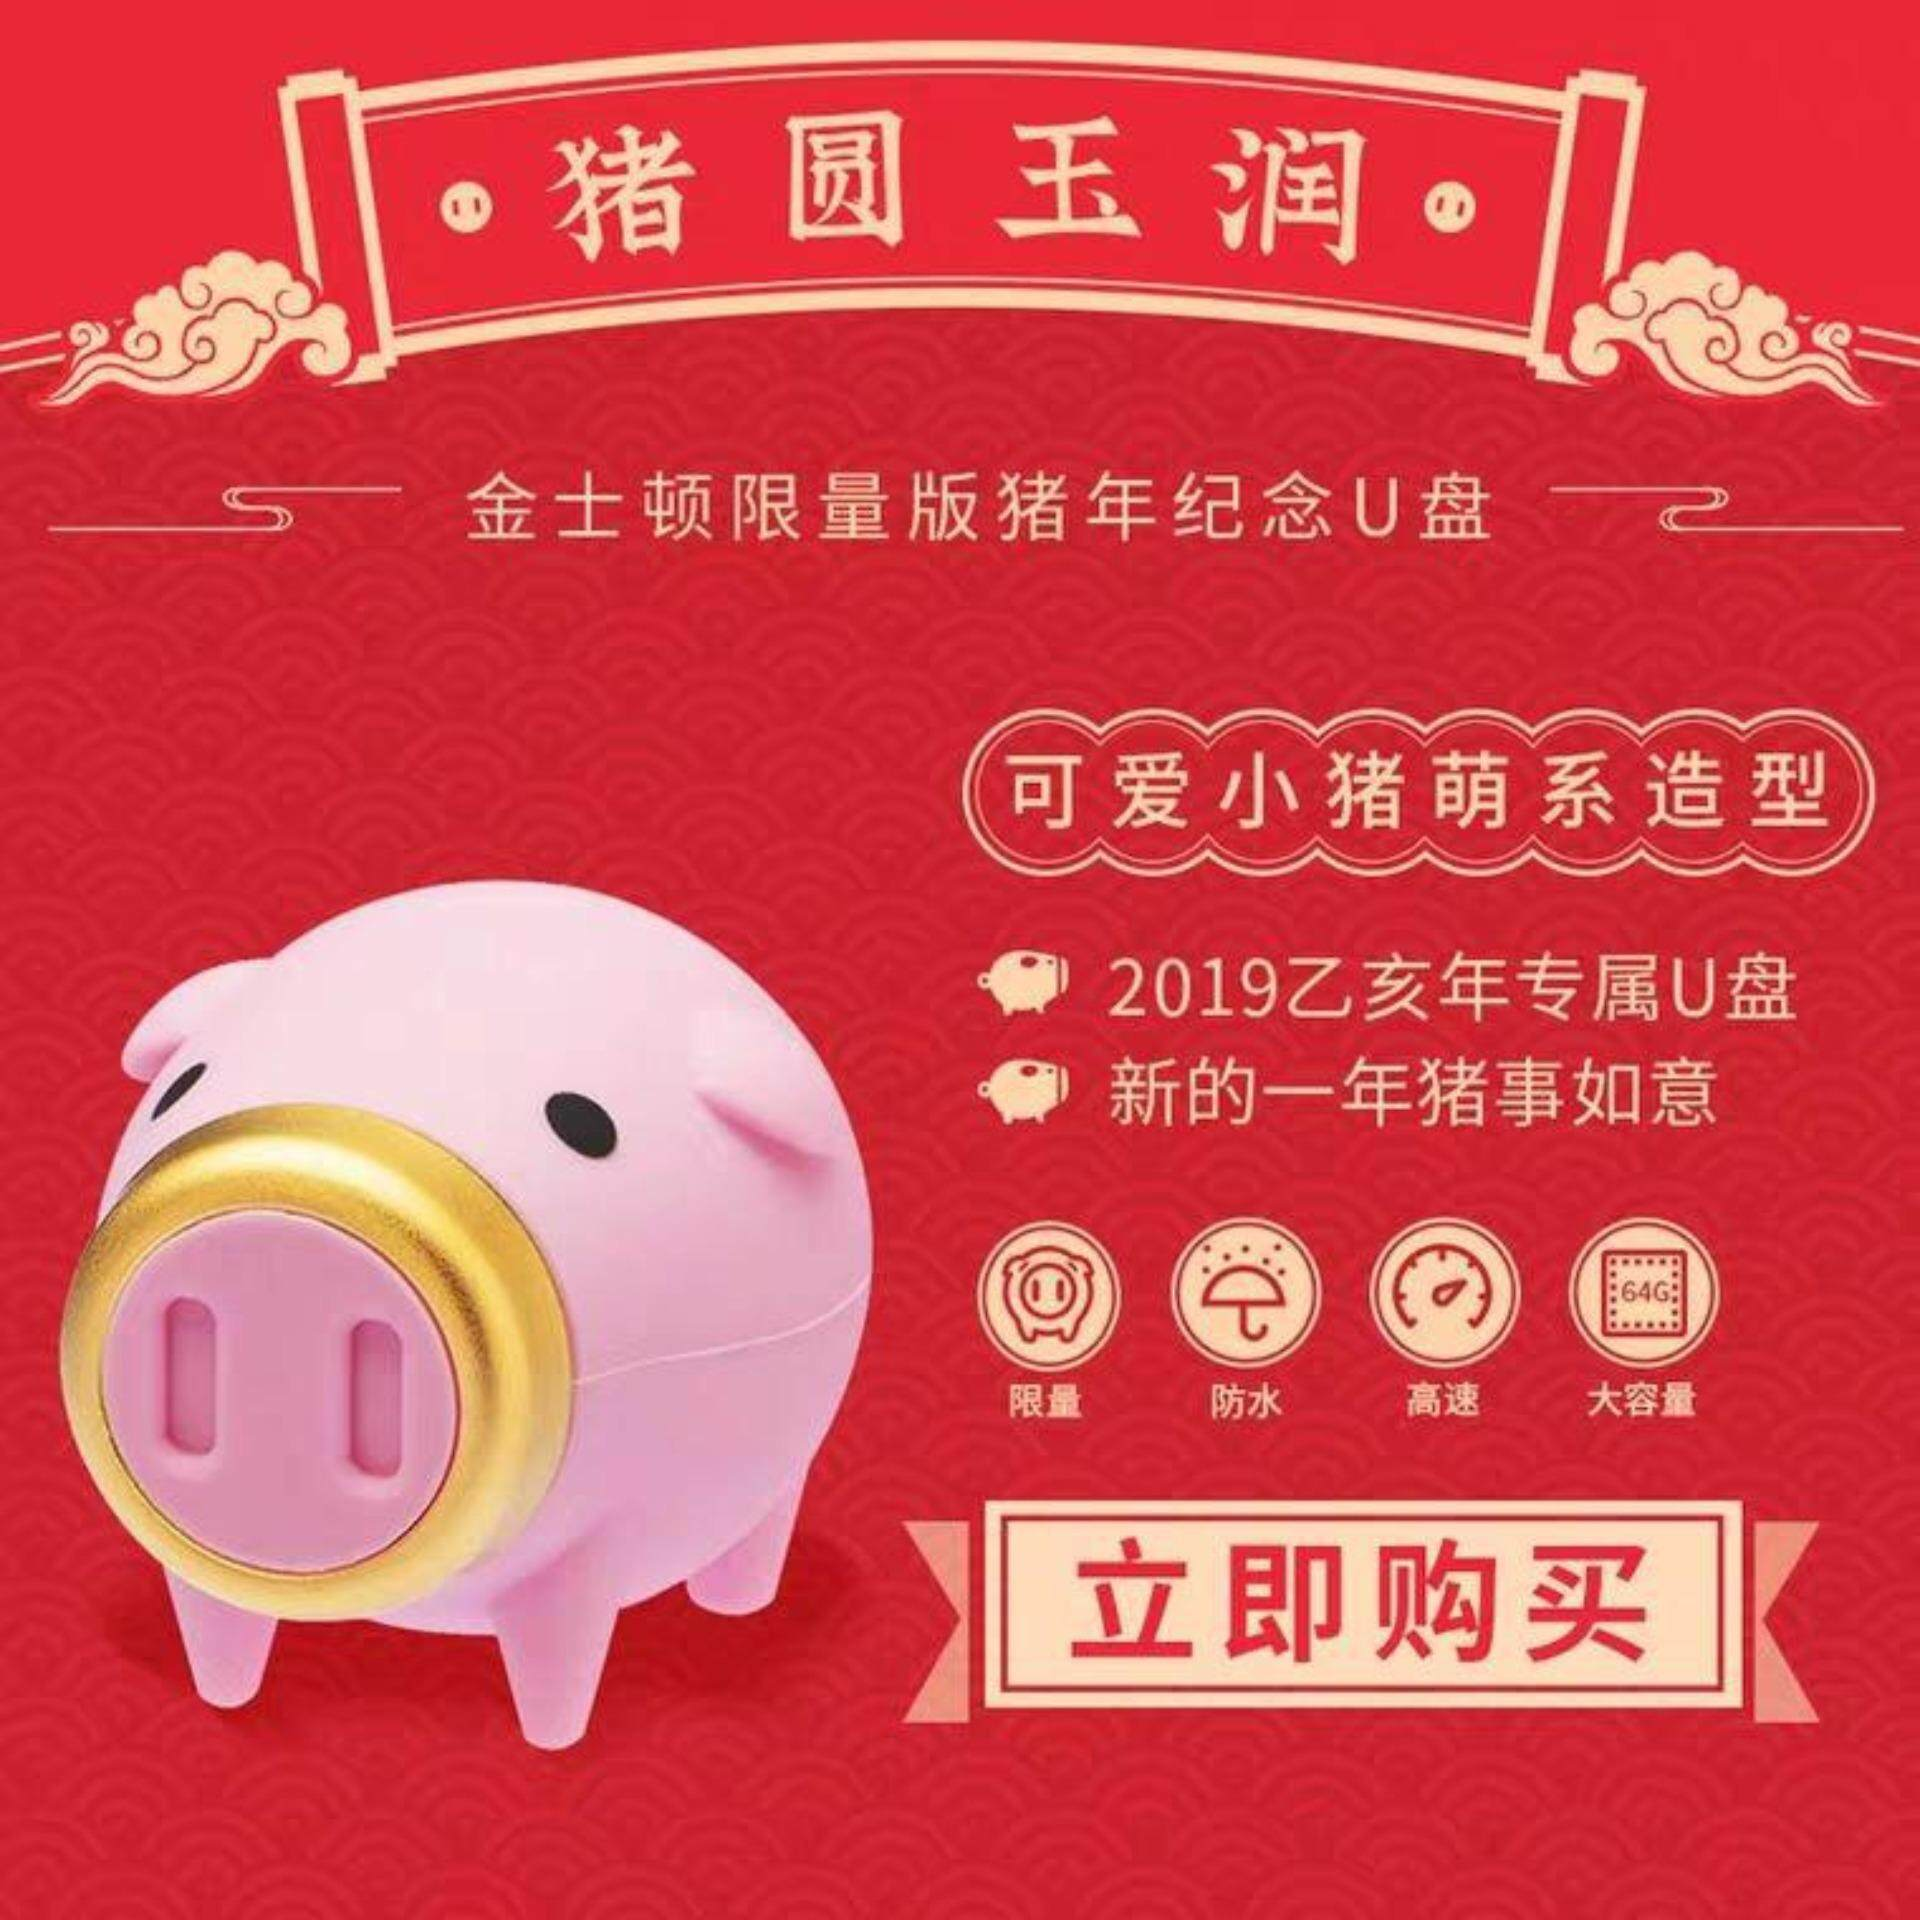 Kingston 2019 Chinese New Year of Pig 64GB USB 3.1 CNY Flash Drive/Pendrive (LIMITED EDITION) (Best CNY Gifts) READY STOCK